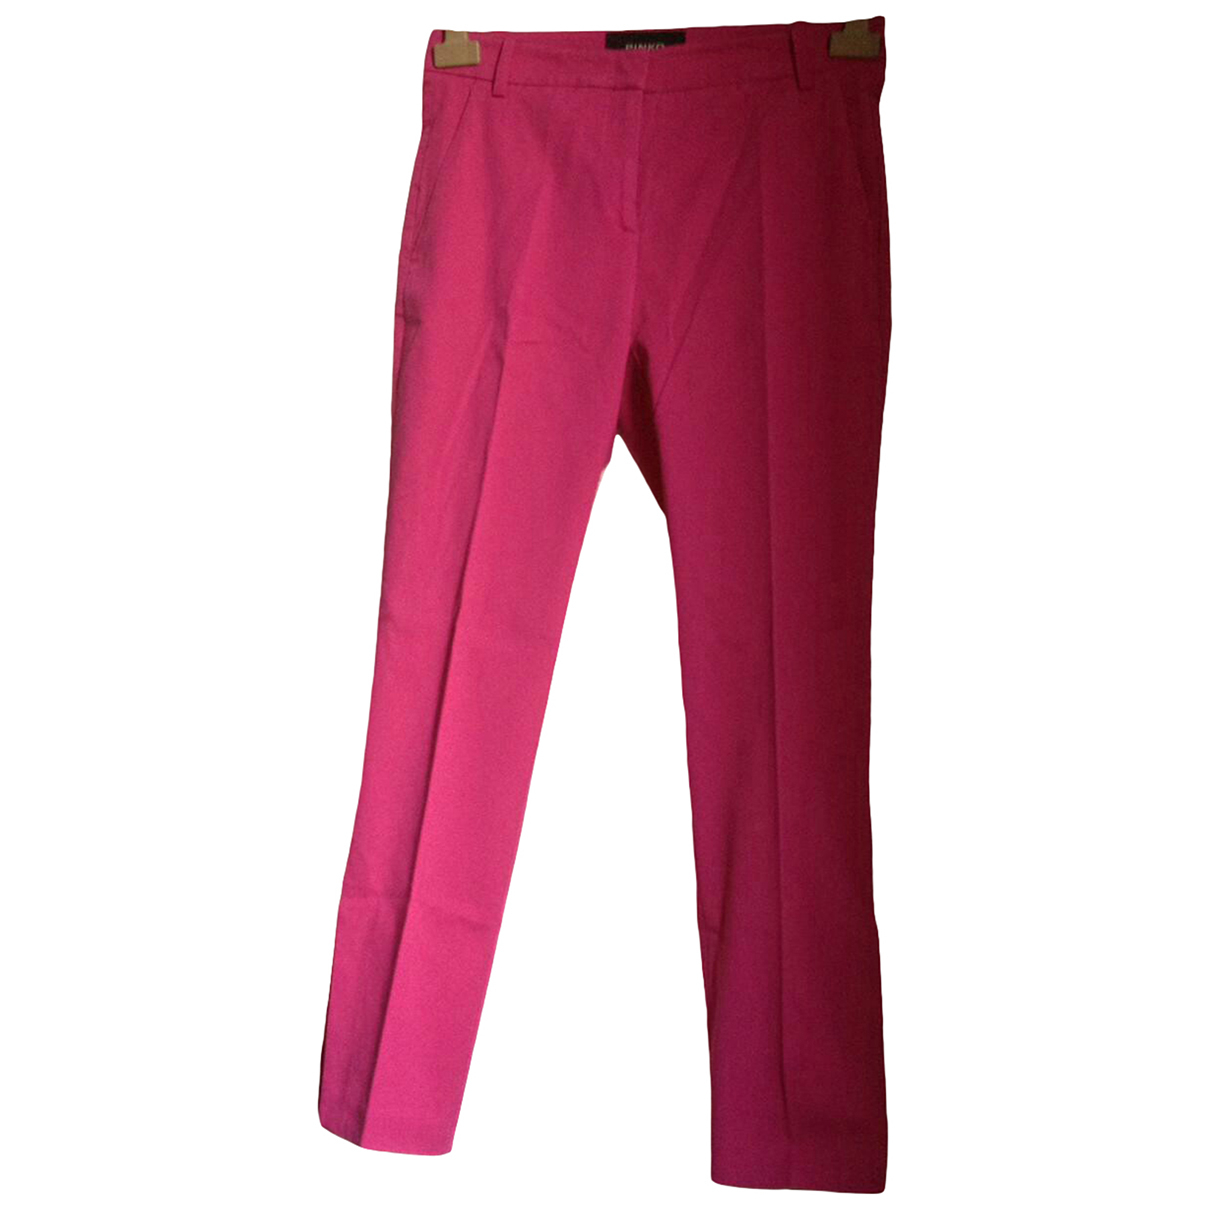 Pinko \N Pink Cotton Trousers for Women 40 IT